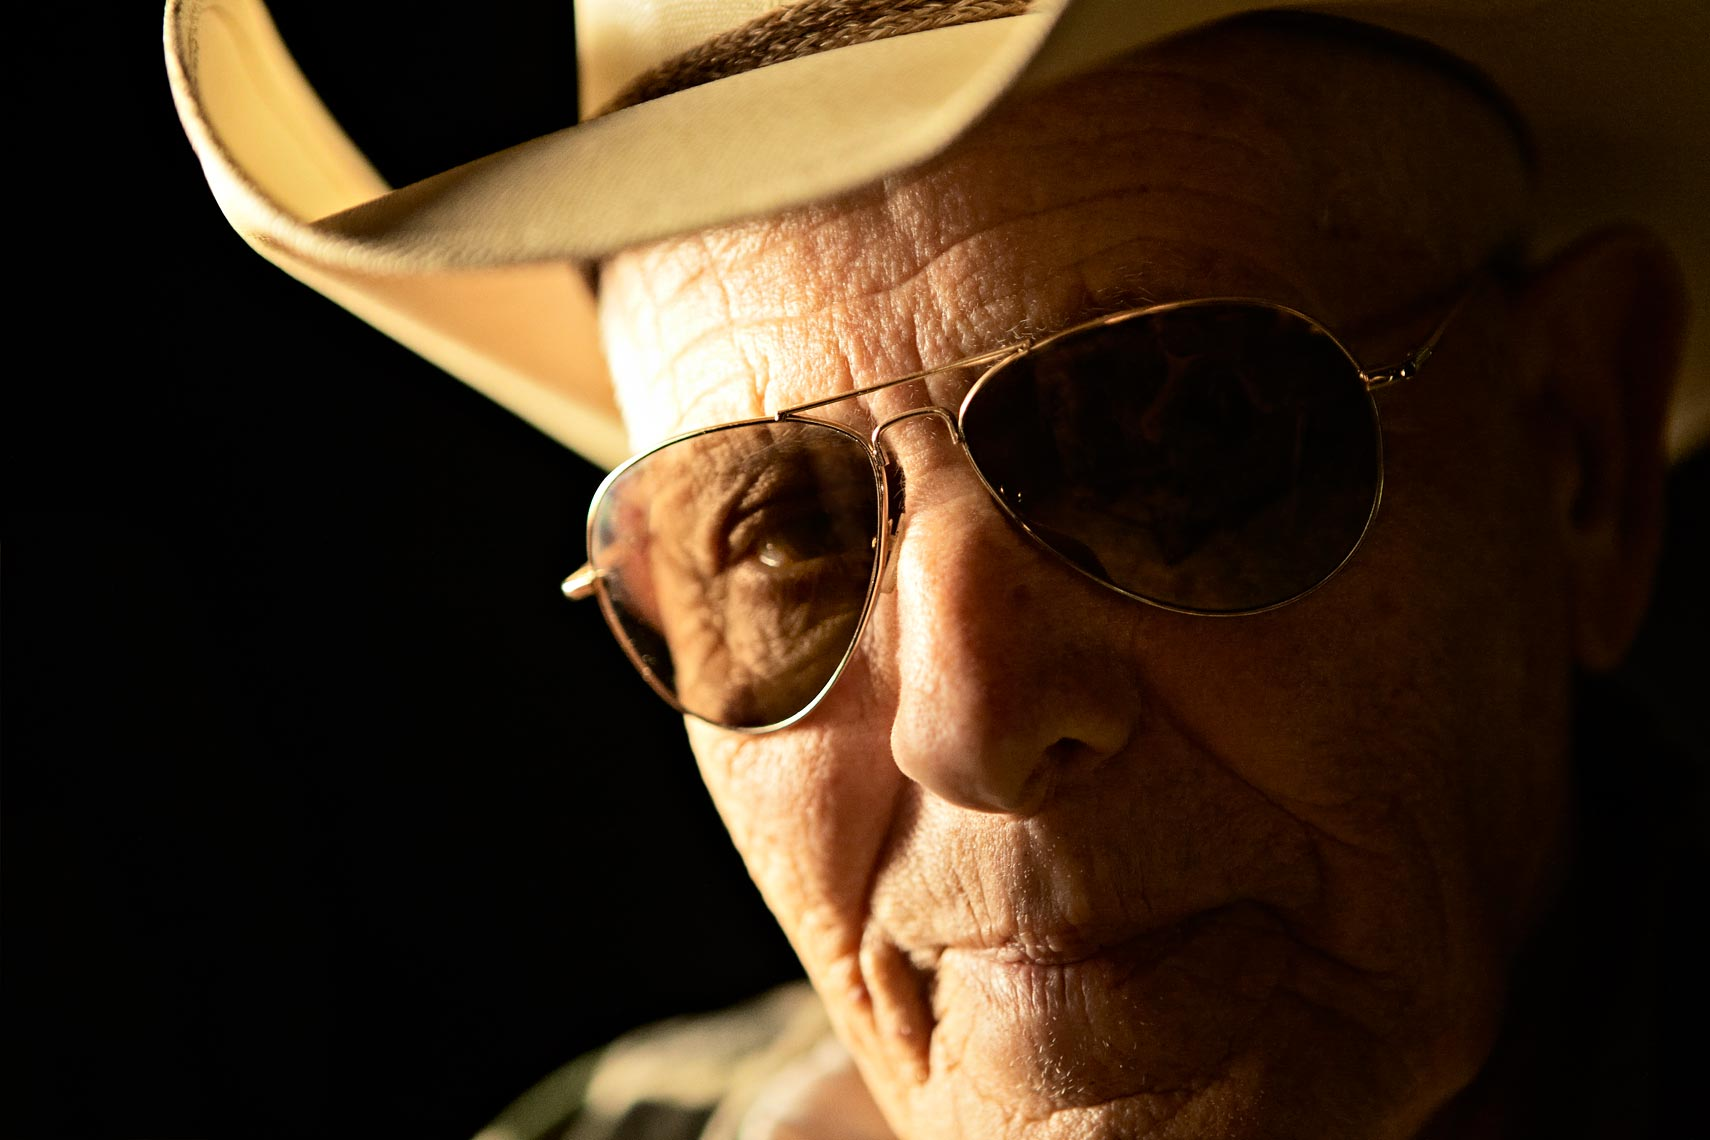 Tight portrait of old man wearing cowboy hat and sunglasses at night